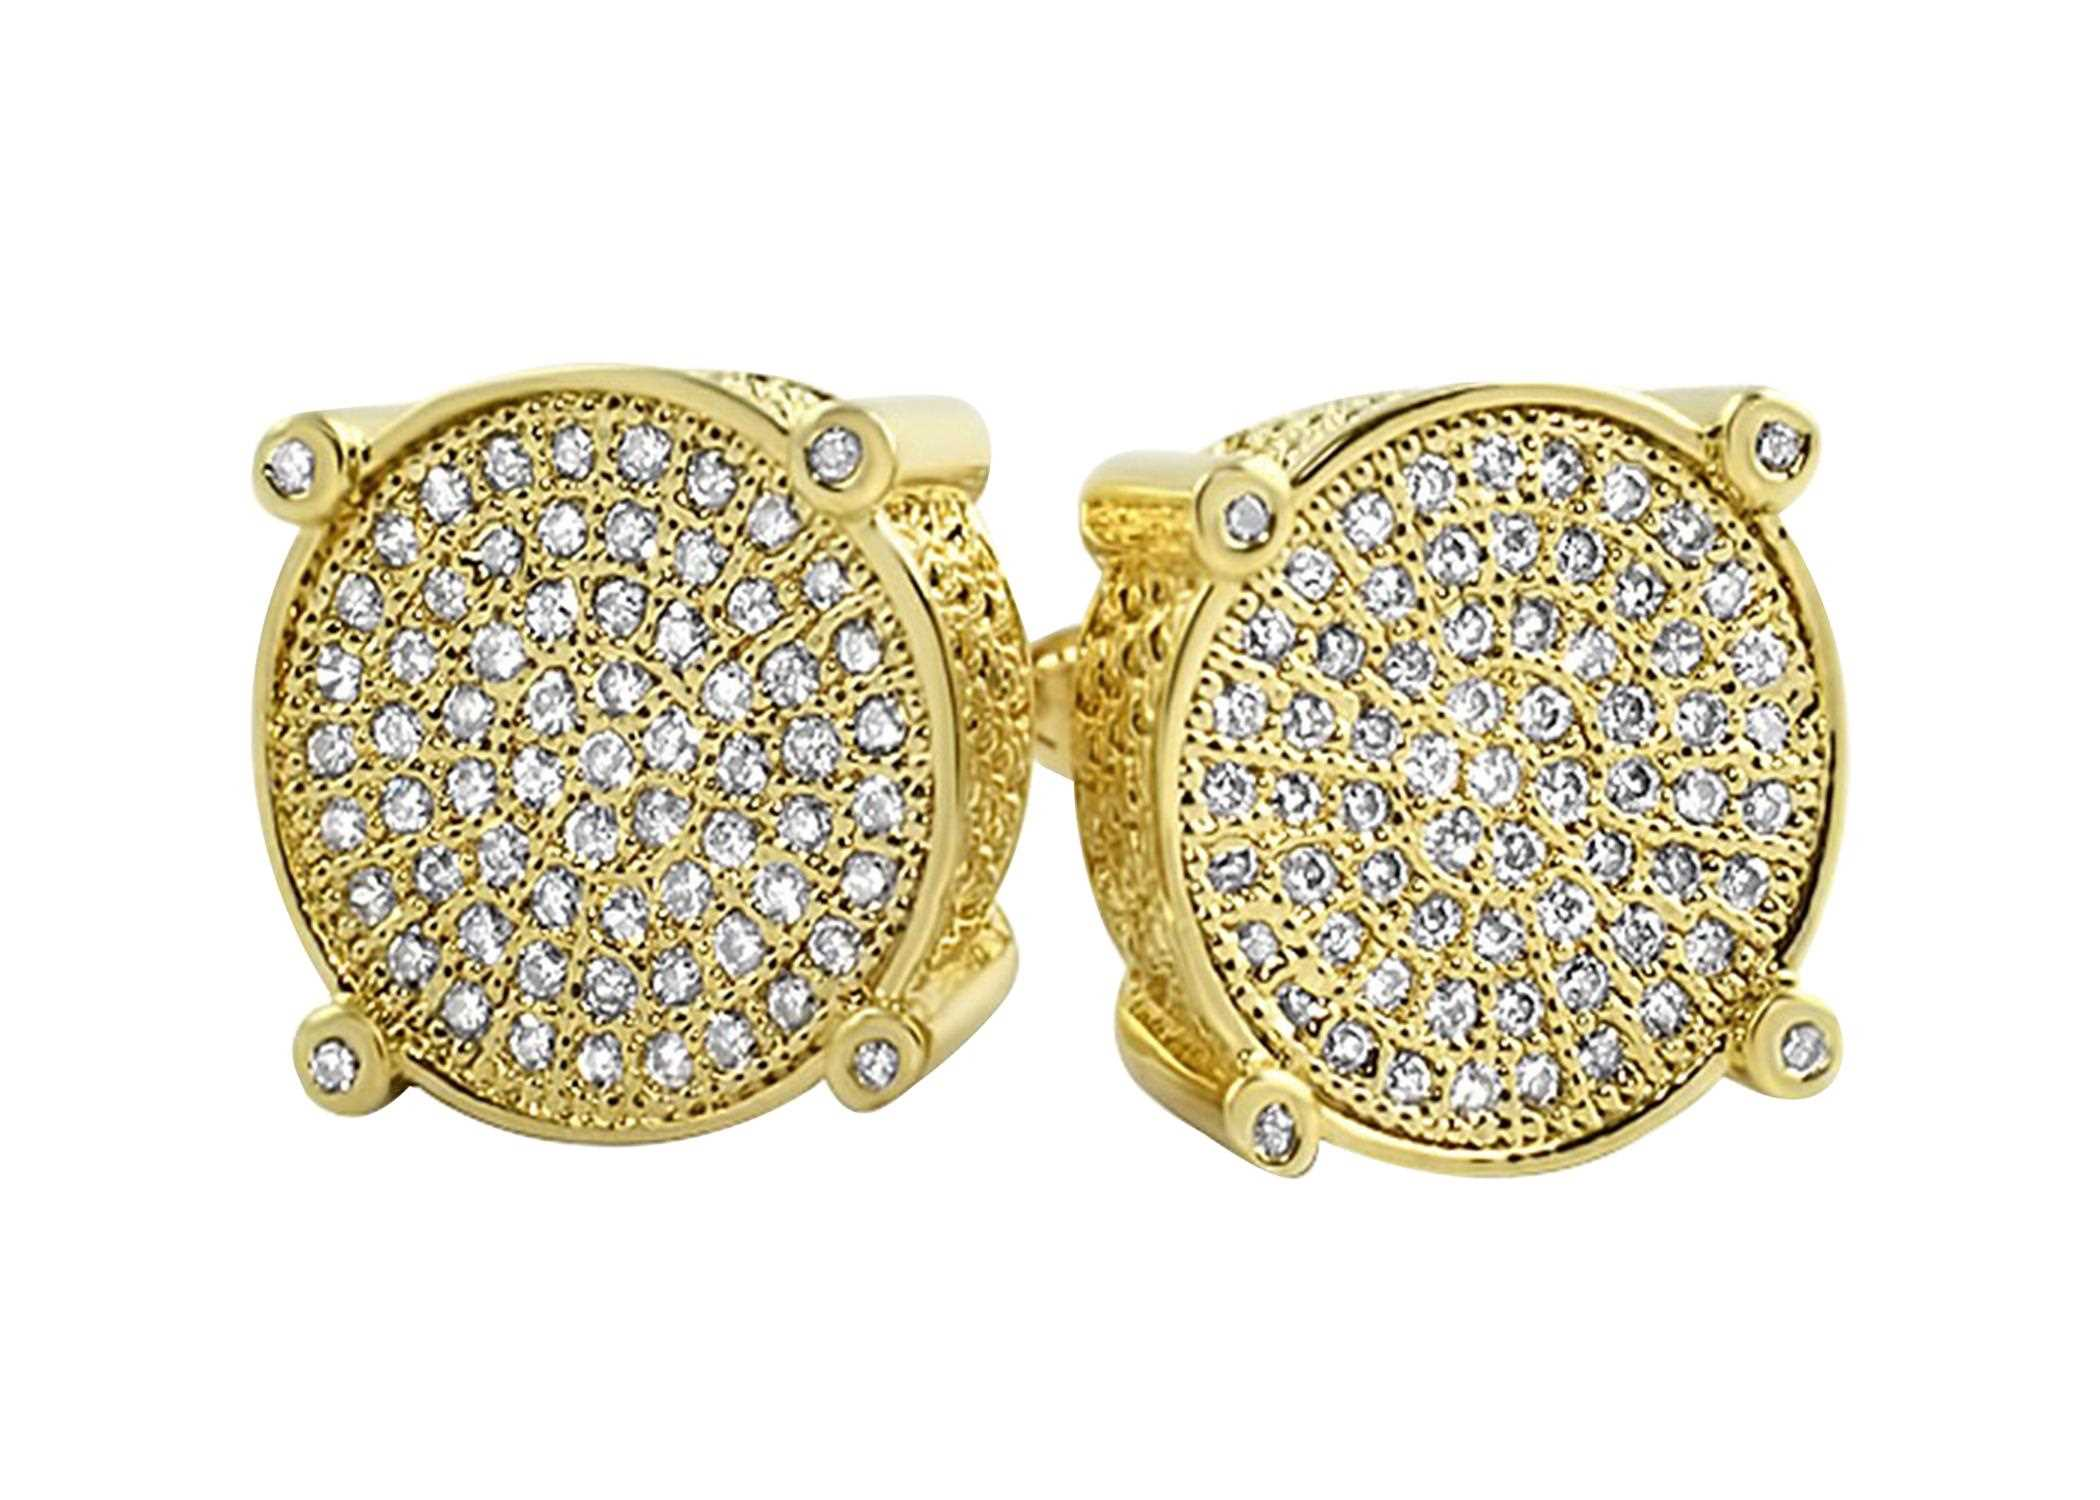 7c5d9291b Gold Plated Micro Pave Hip Hop Earrings